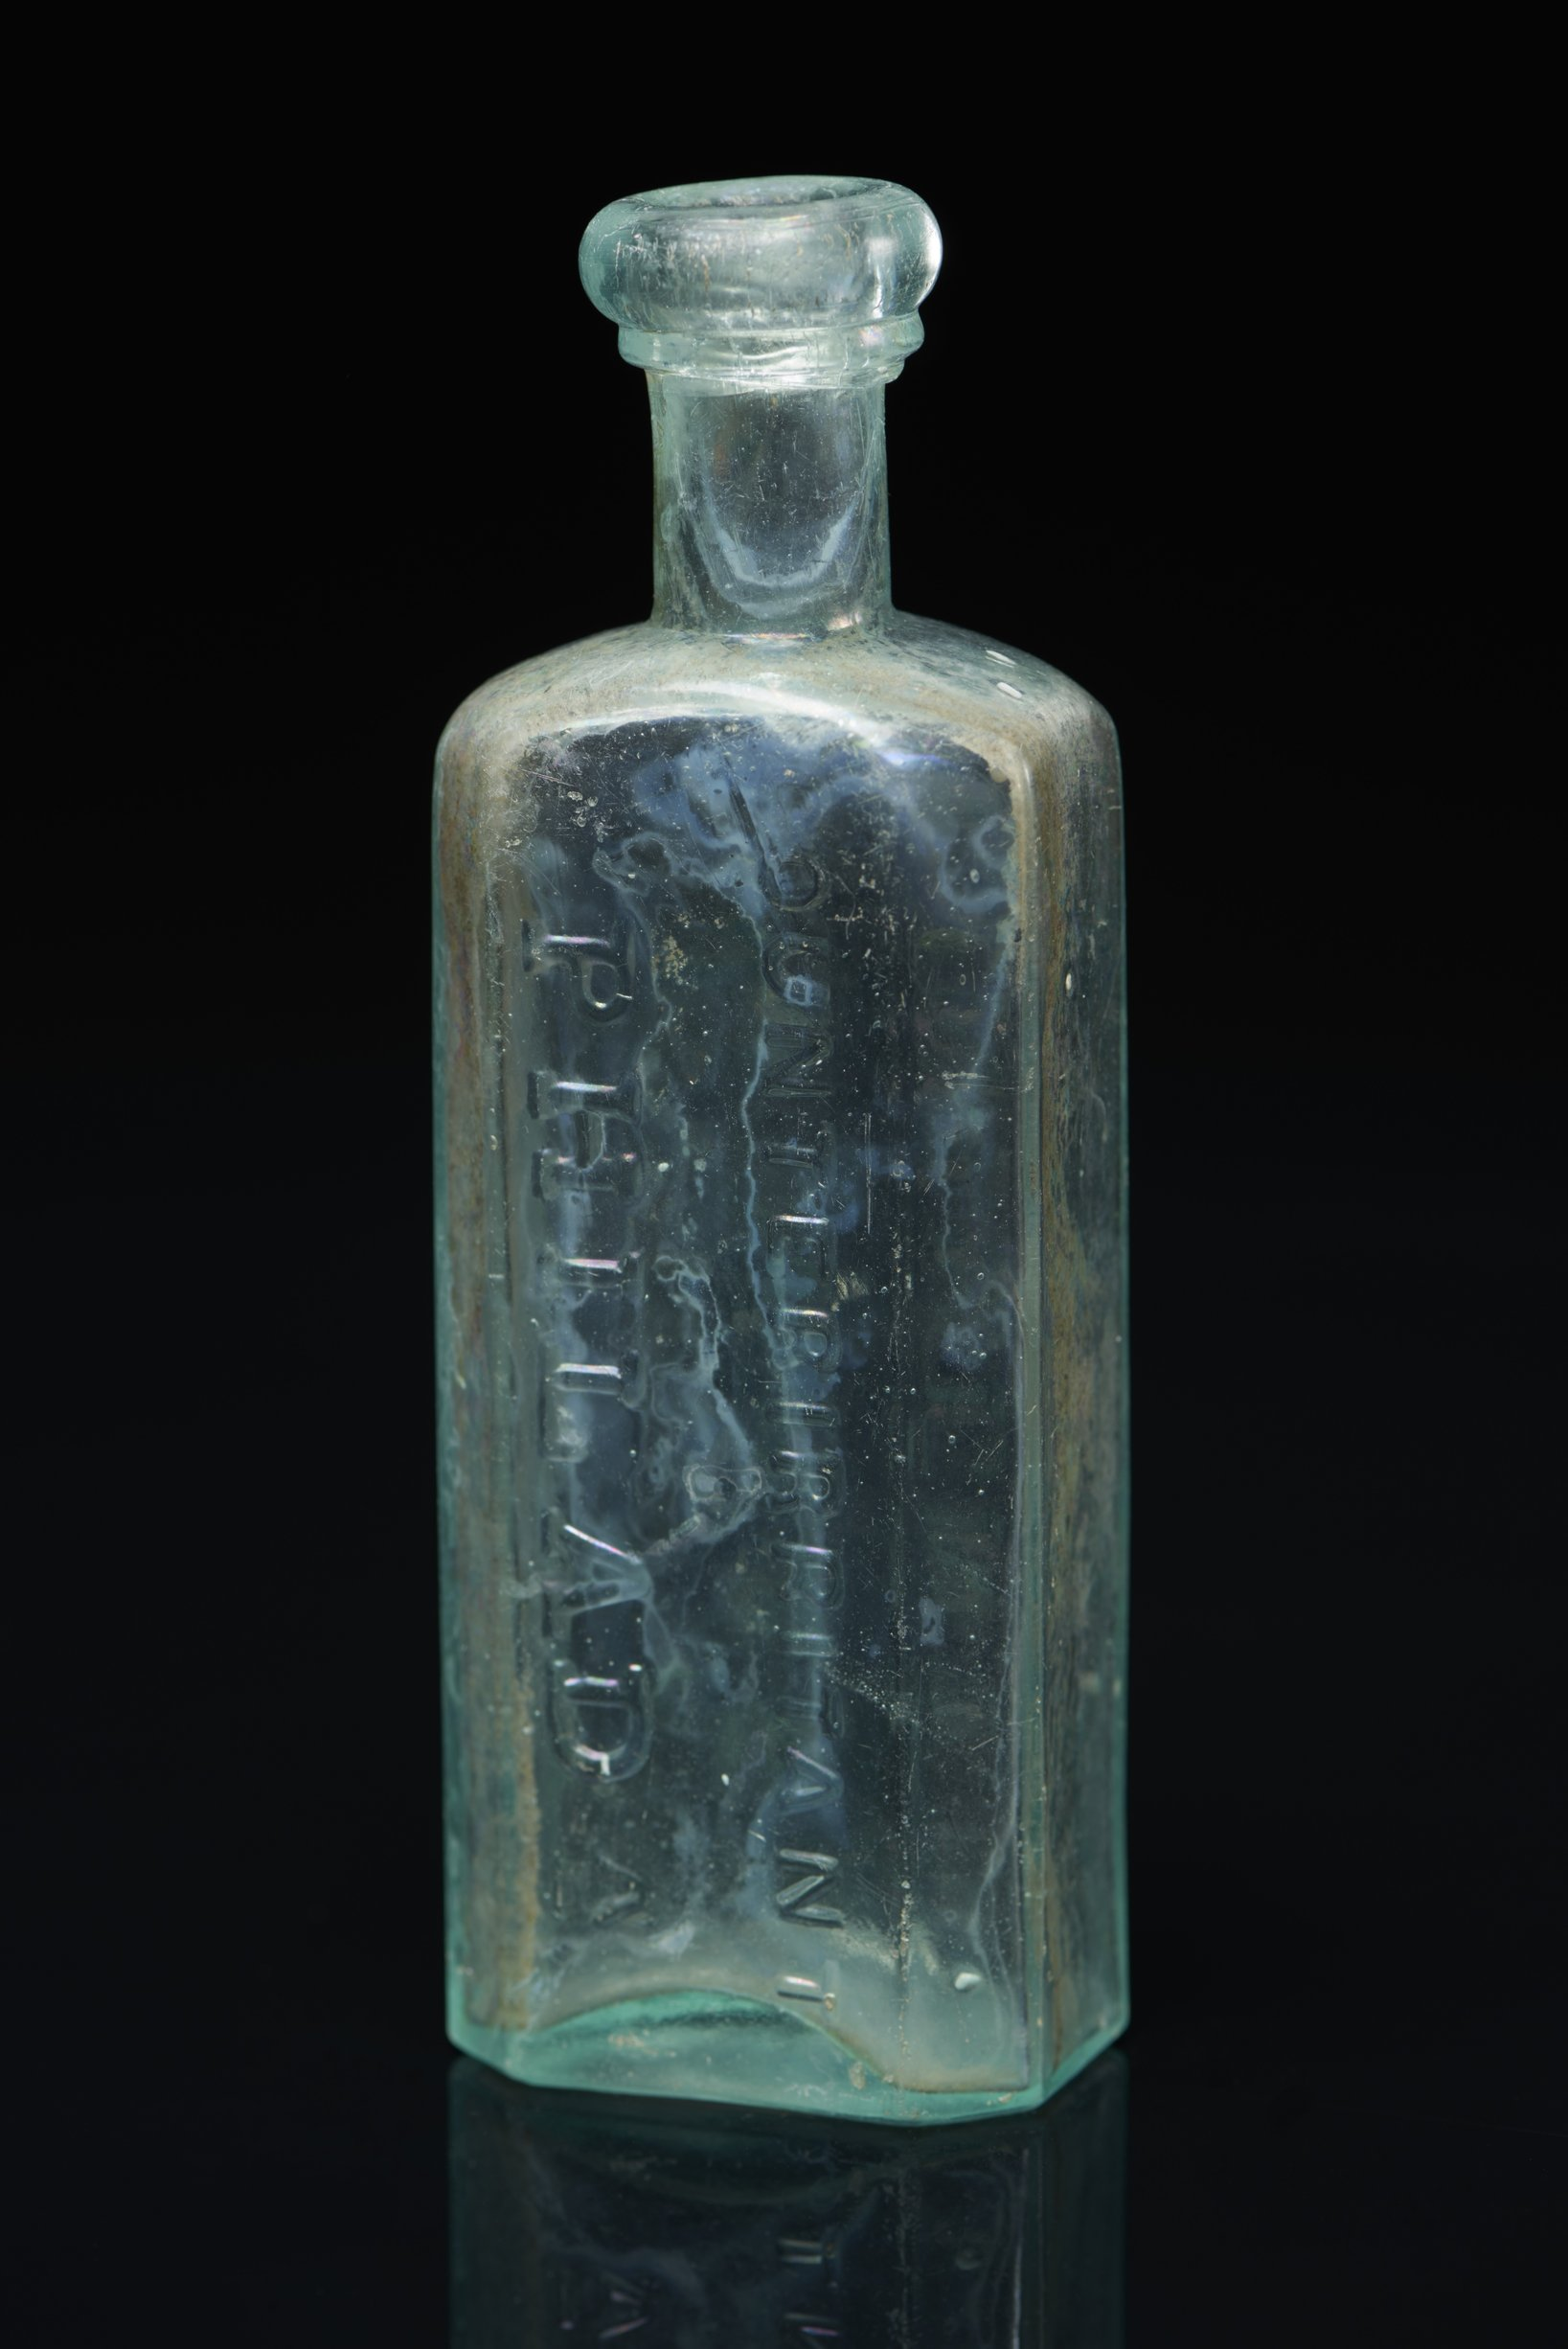 Dr. D. Jayne Liniment or Counterirritant Bottle from the Iowa and Sac and Fox Mission, 14DP384 - 3